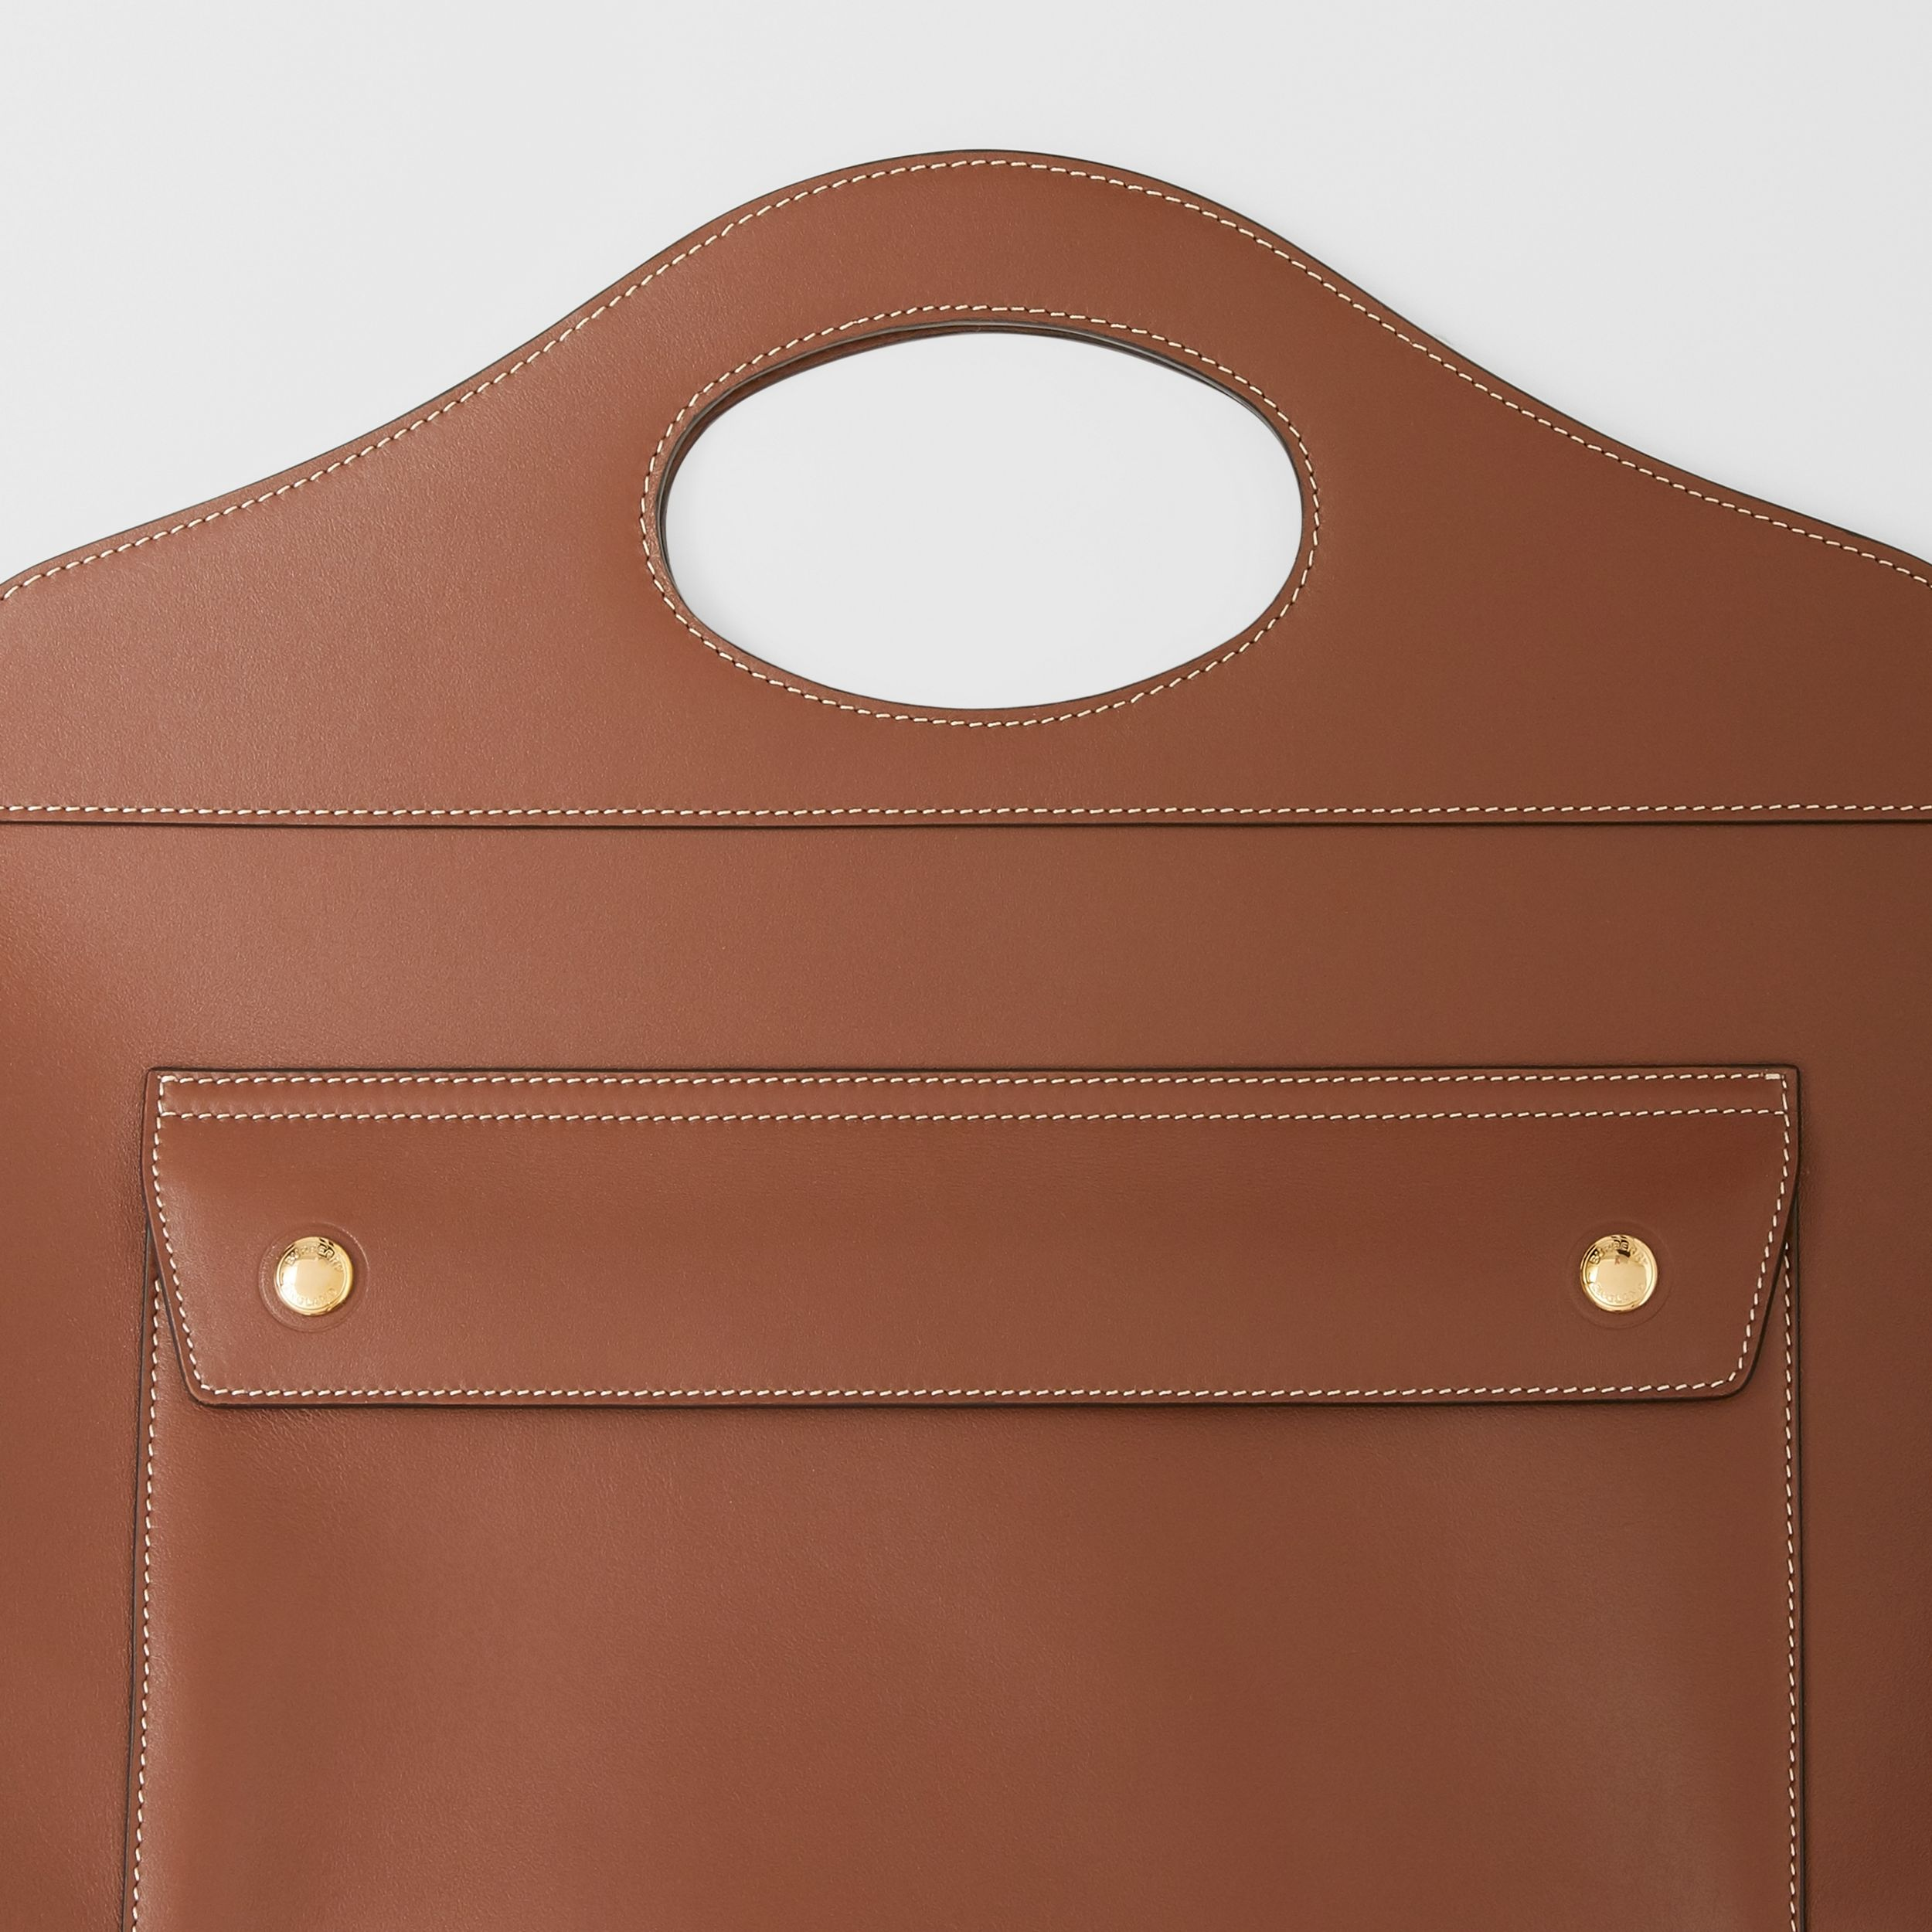 Medium Leather Soft Pocket Tote in Tan - Women | Burberry - 2